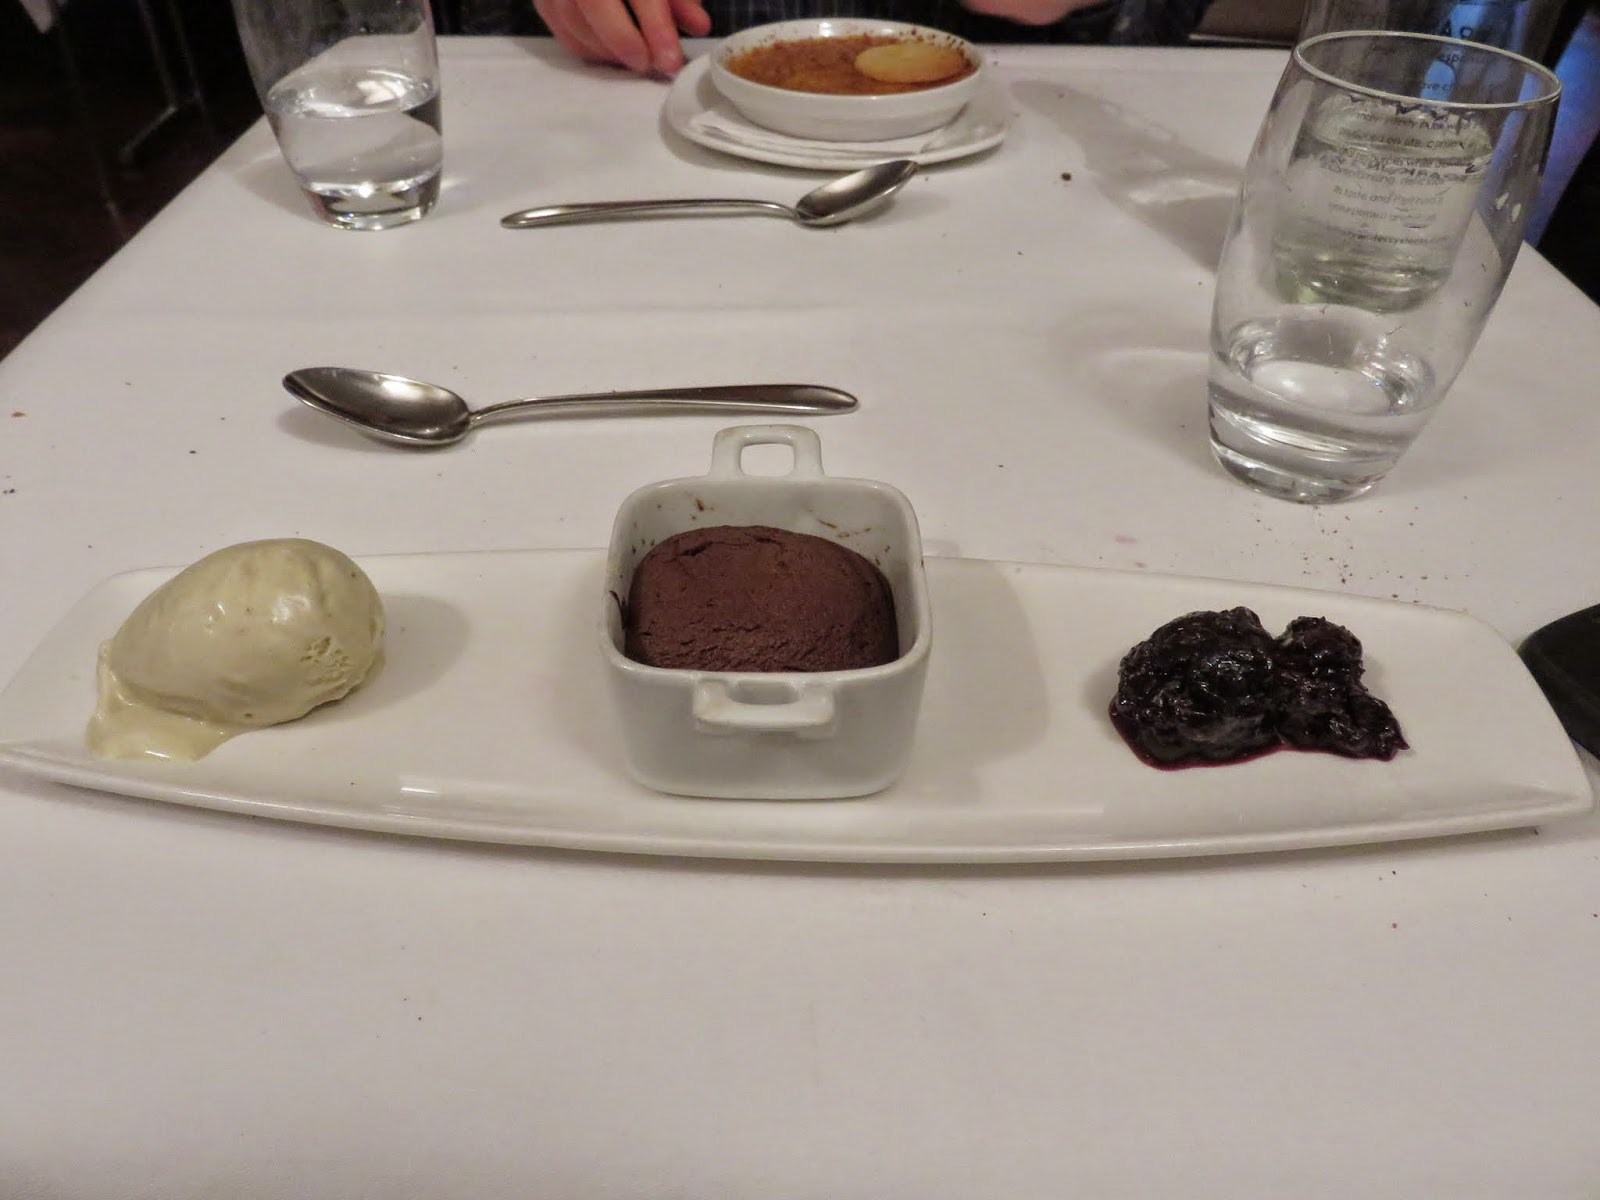 warm chocolate fondant served in a mini-casserole dish with vanilla ice cream and cherry compote